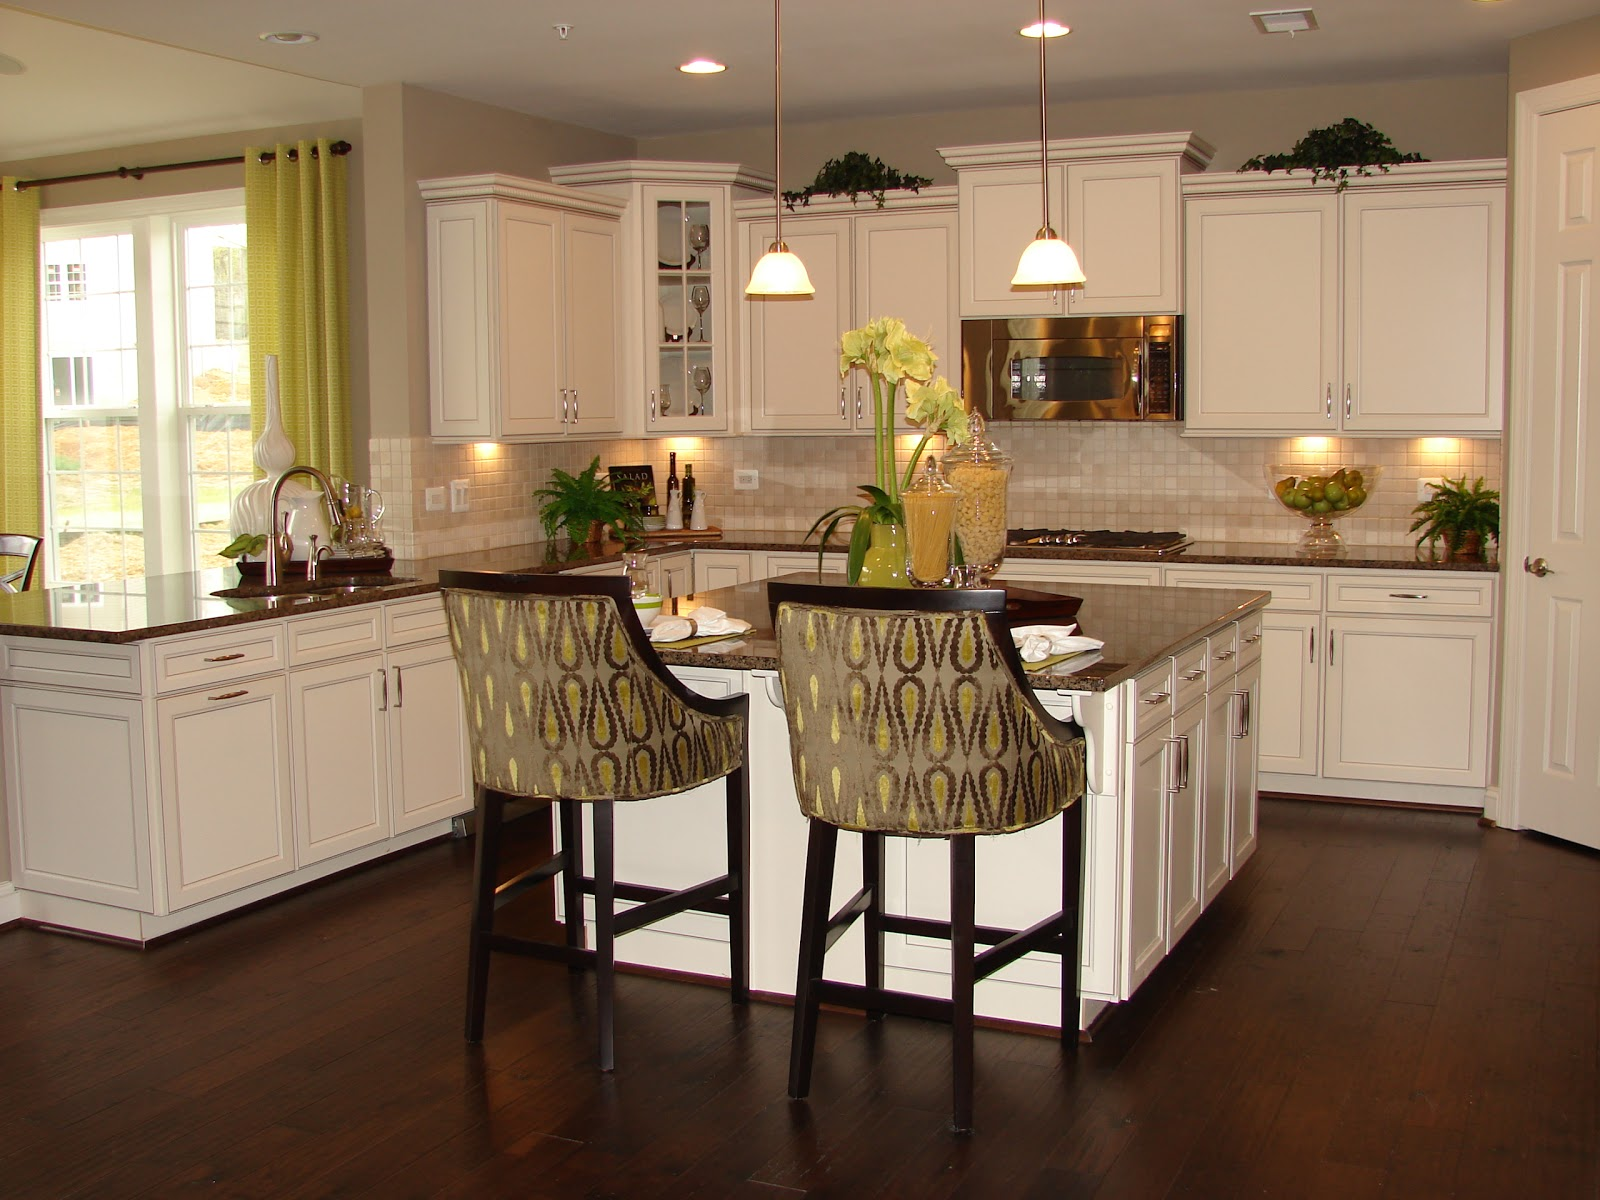 Kitchens In New Homes Small White Kitchen Table Building A Ryan Home Avalon April 2012